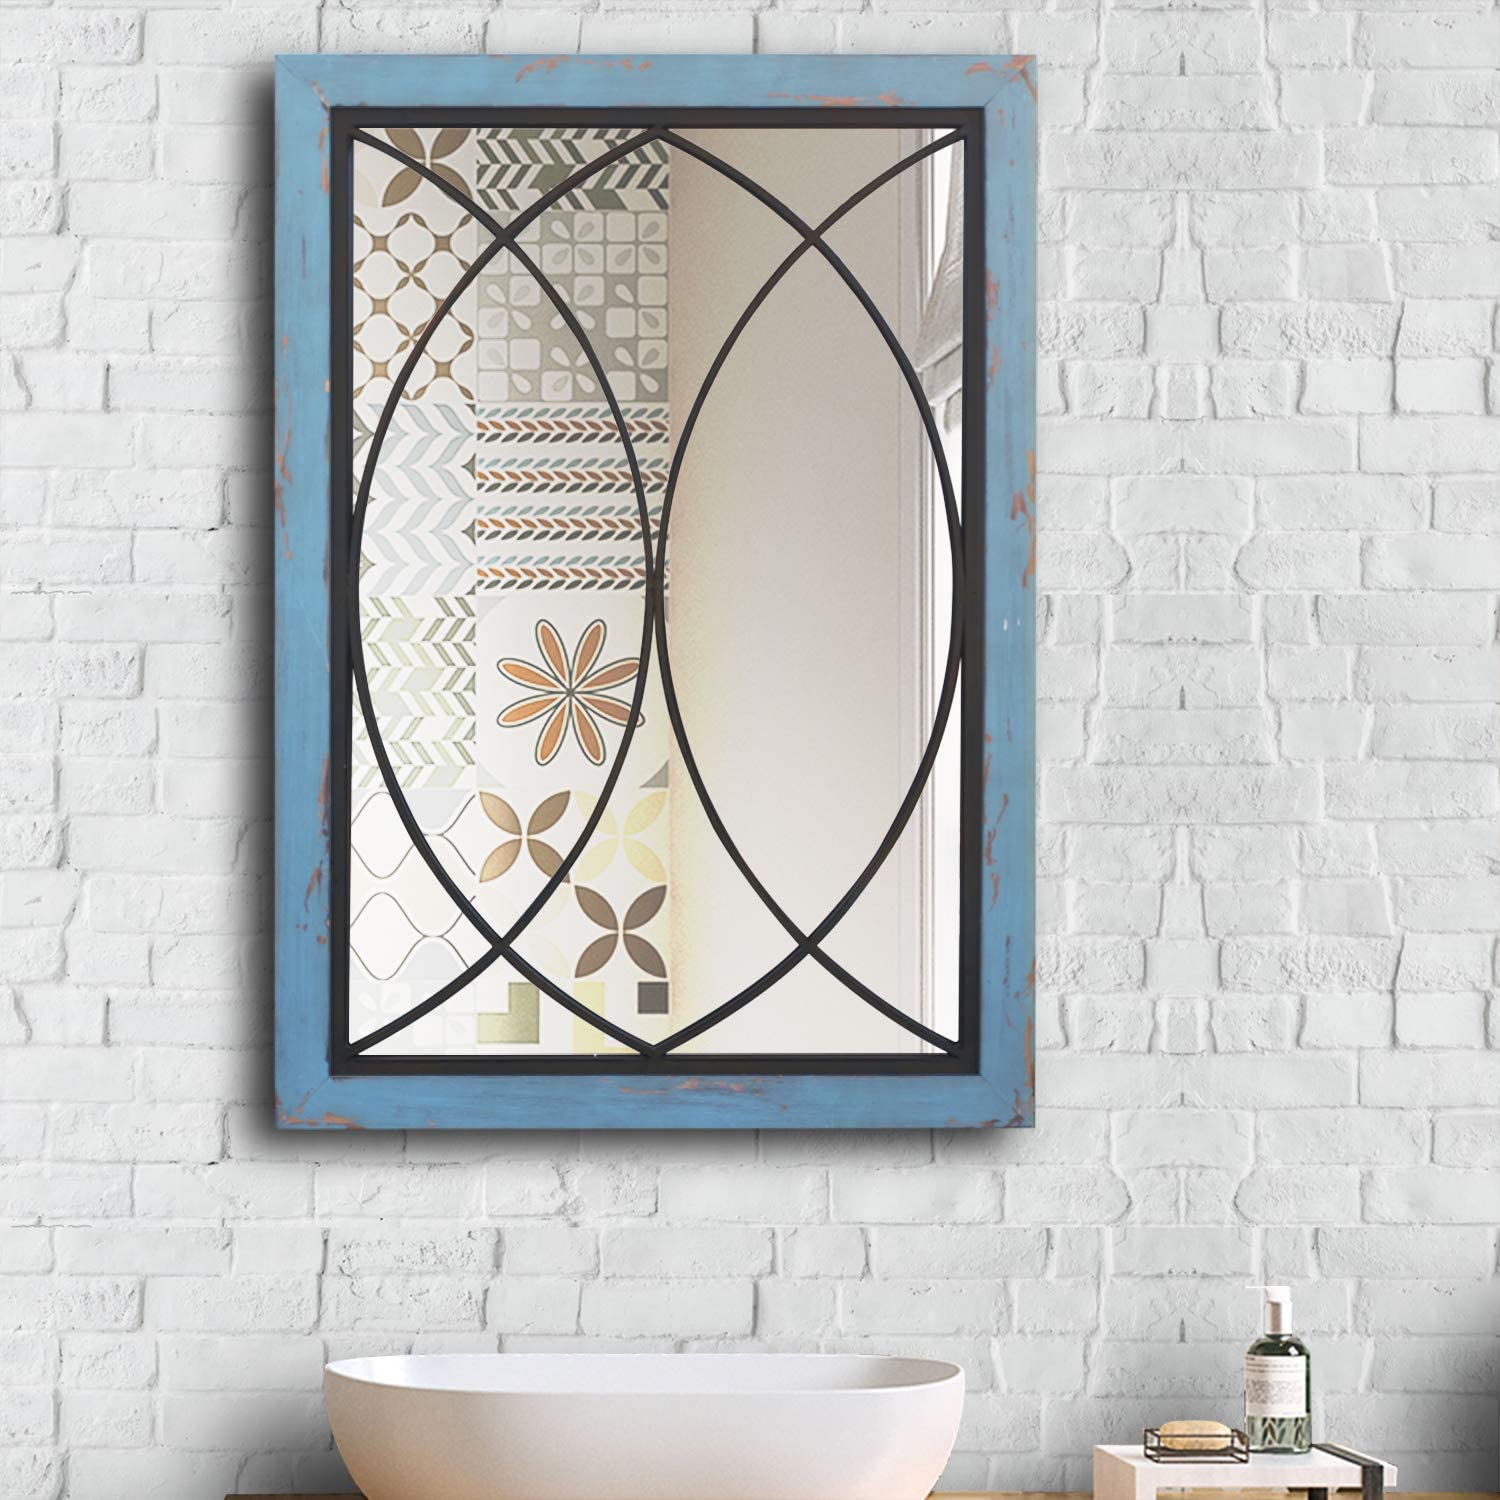 """Wall Mirror Mounted Decorative Rectangle Long Hanging Decor Mirror for Bathroom Vanity, Living Room or Bedroom Blue 38.5"""" x1"""" x26.7"""""""